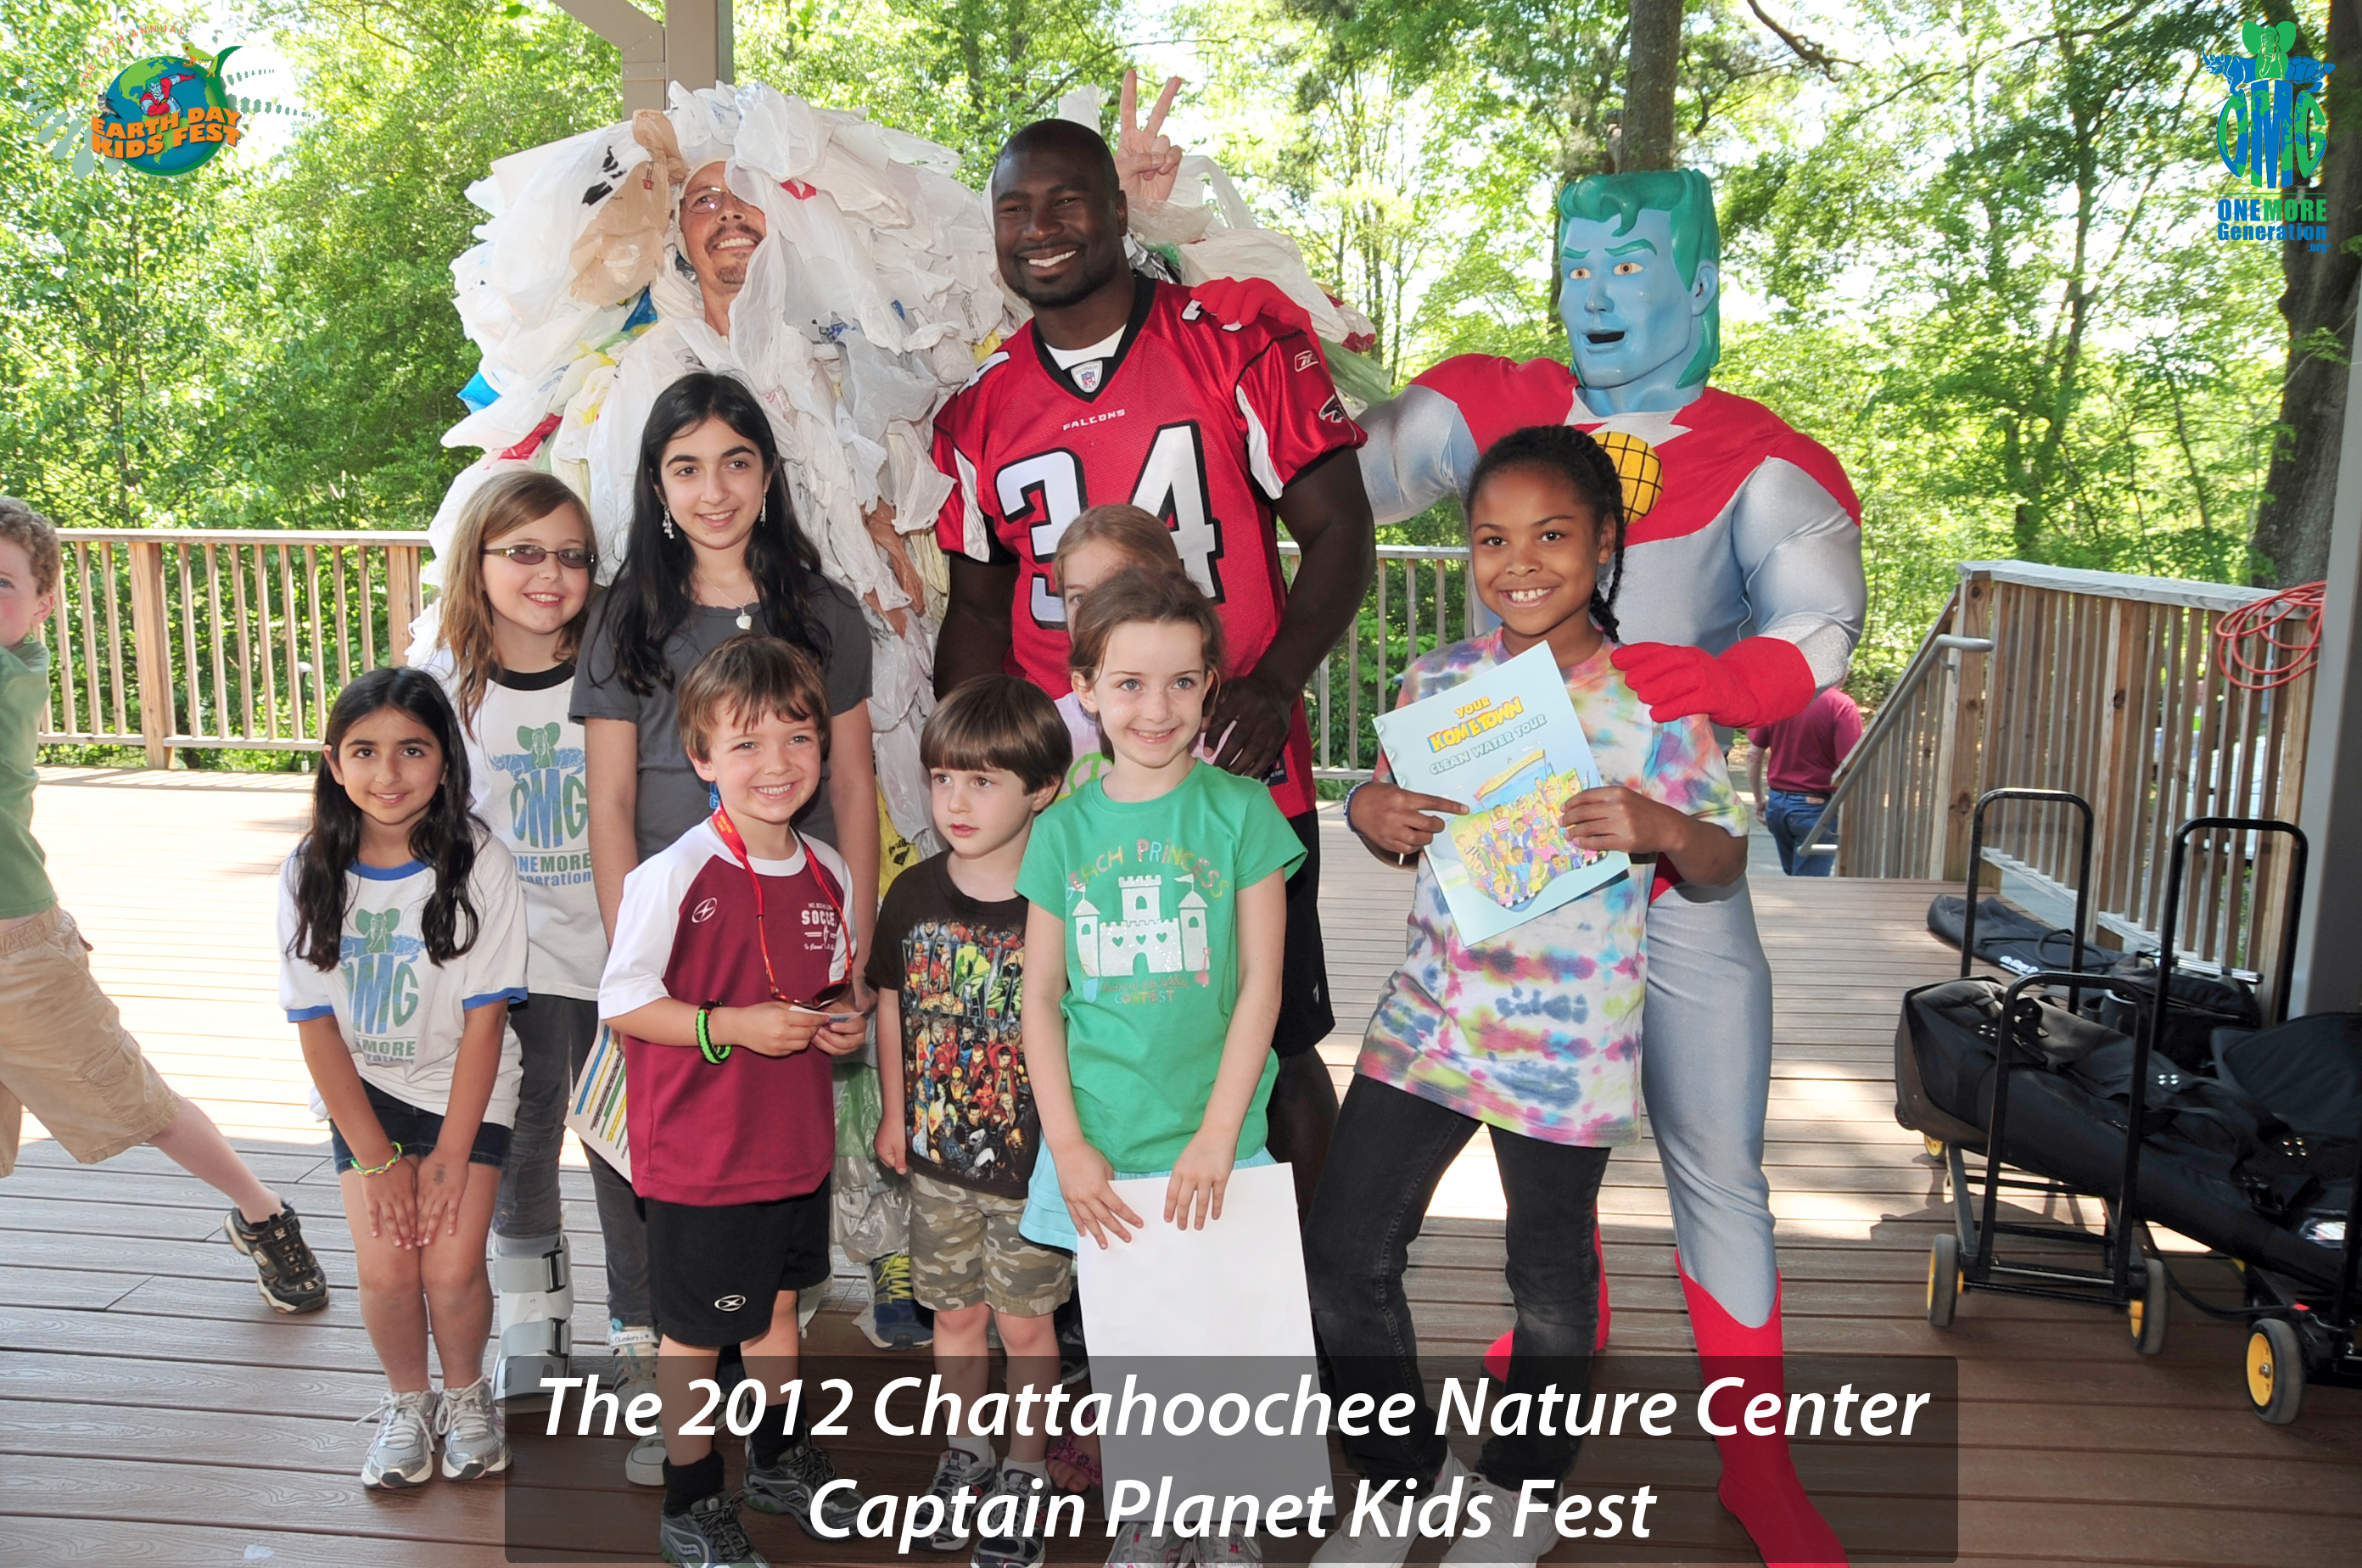 Chattahoochee Nature Center 10th Annual Captain Planet Earth Day Kids Fest